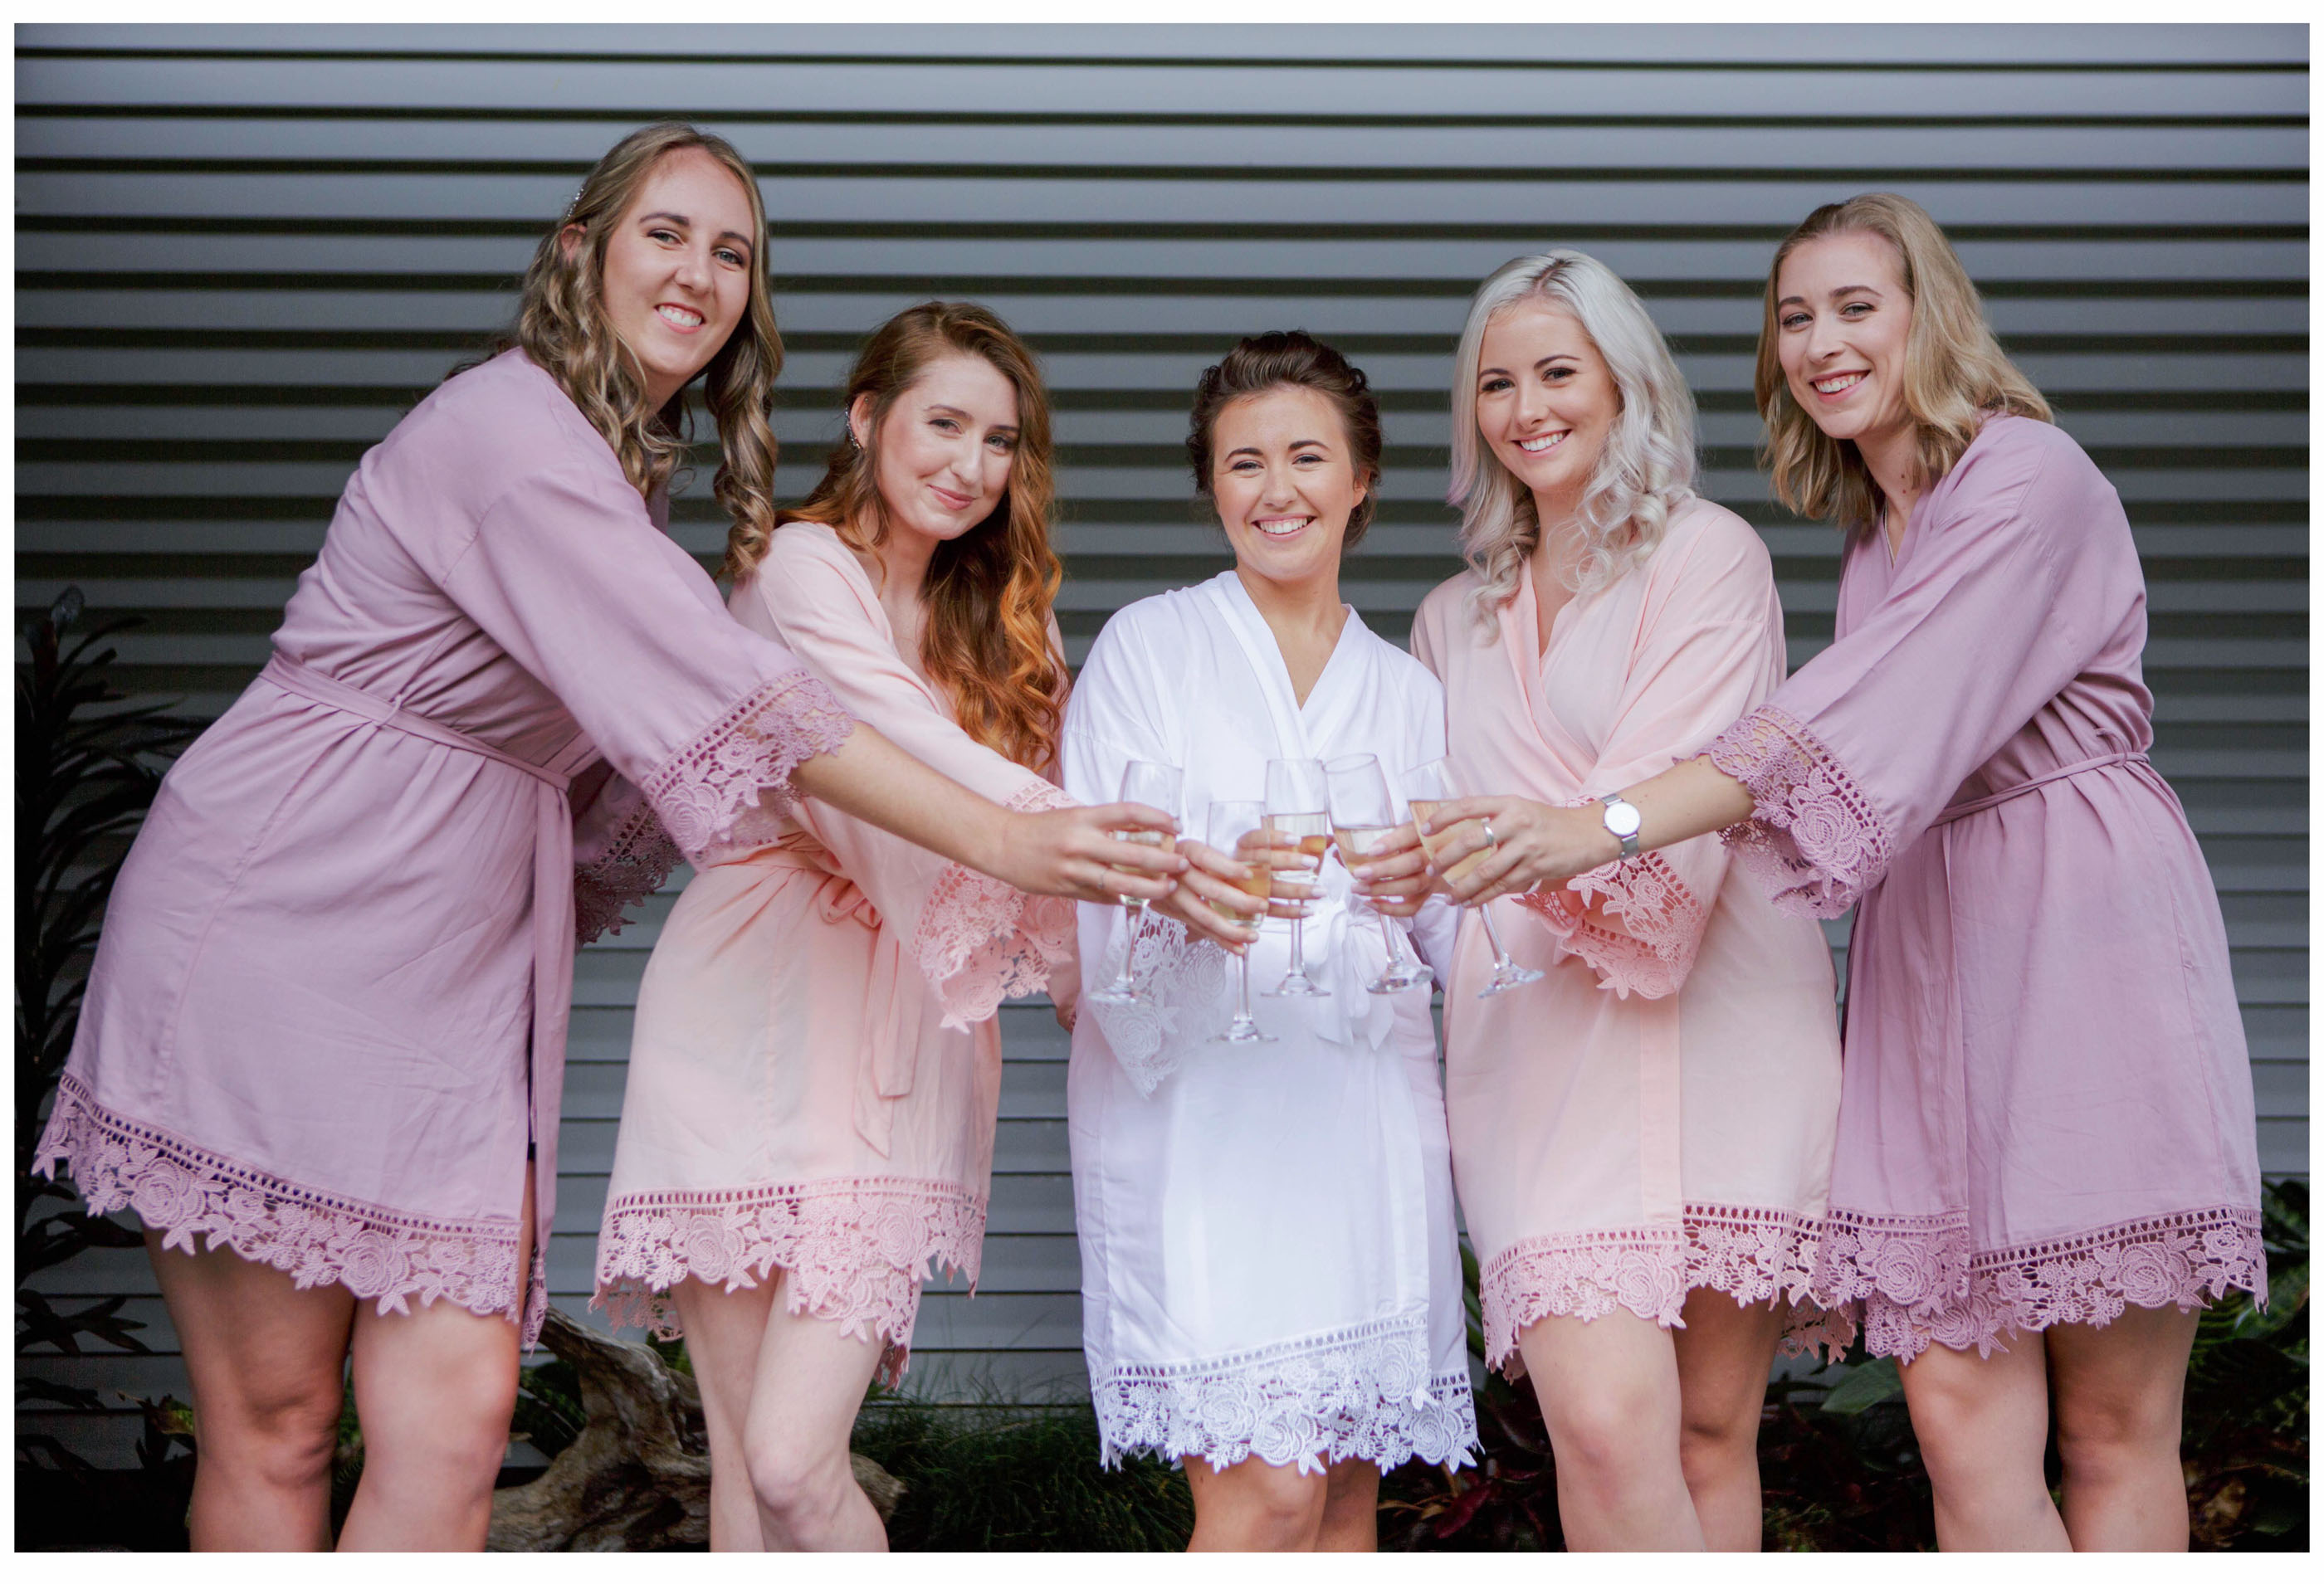 Bride and bridesmaids in dressing robes make champagne toast